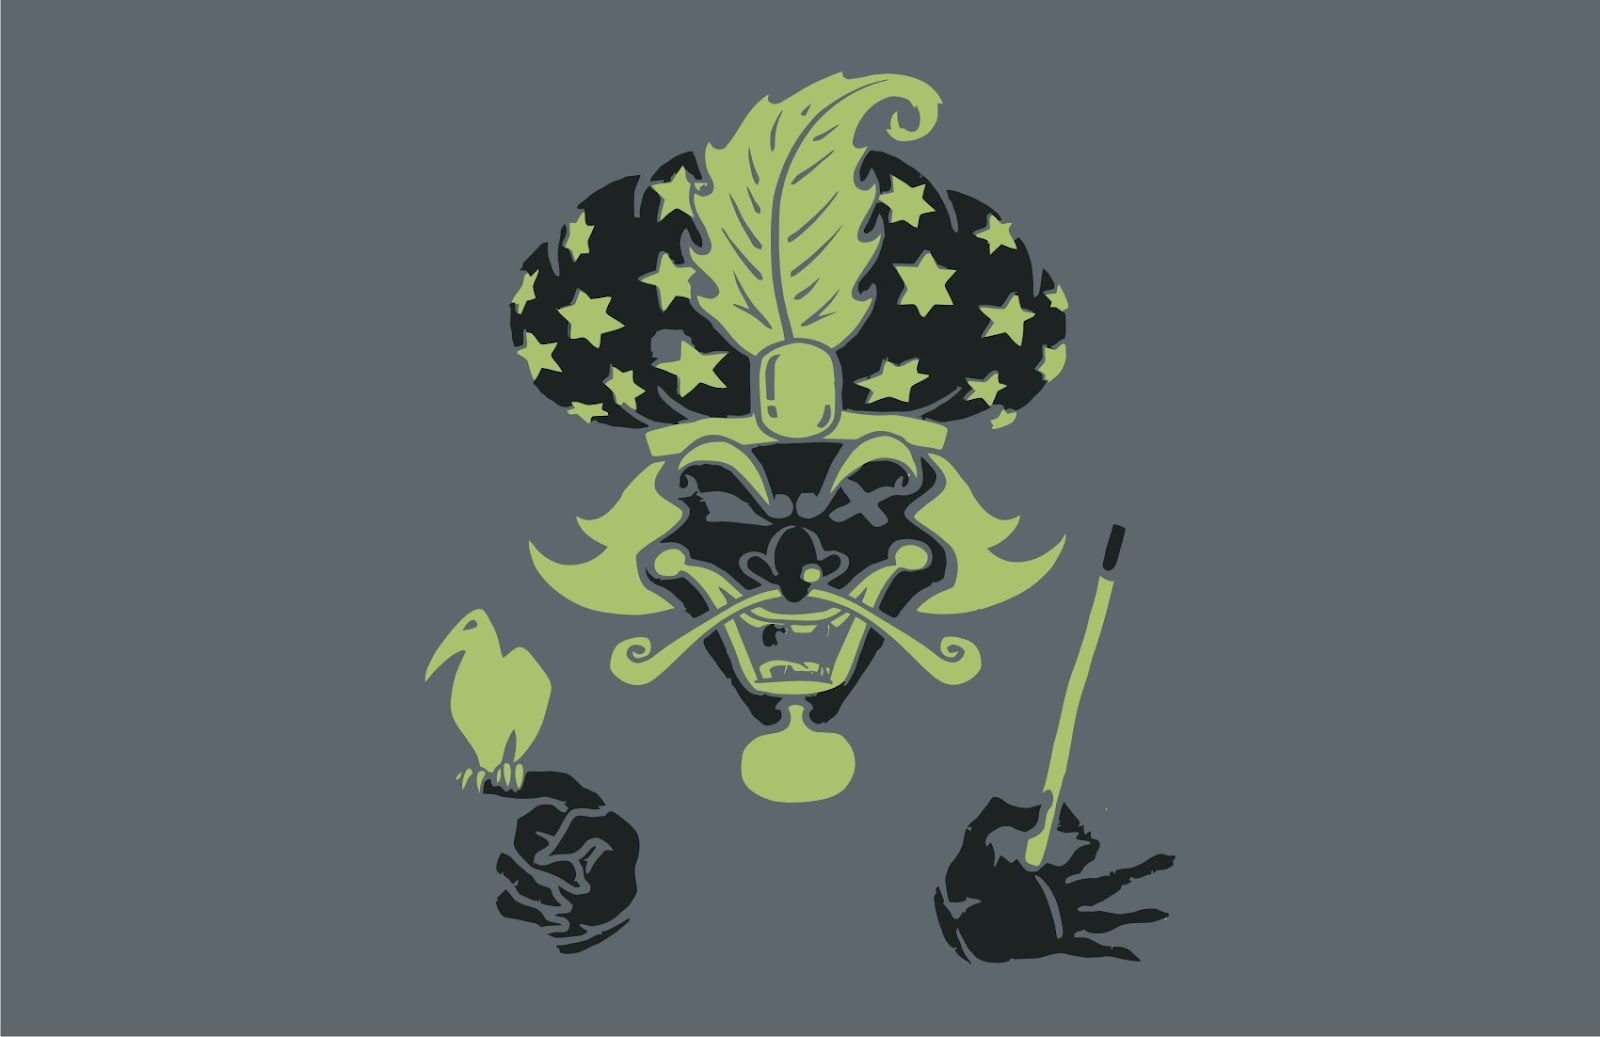 insane_clown_posse-the_great_milenko_back_vector